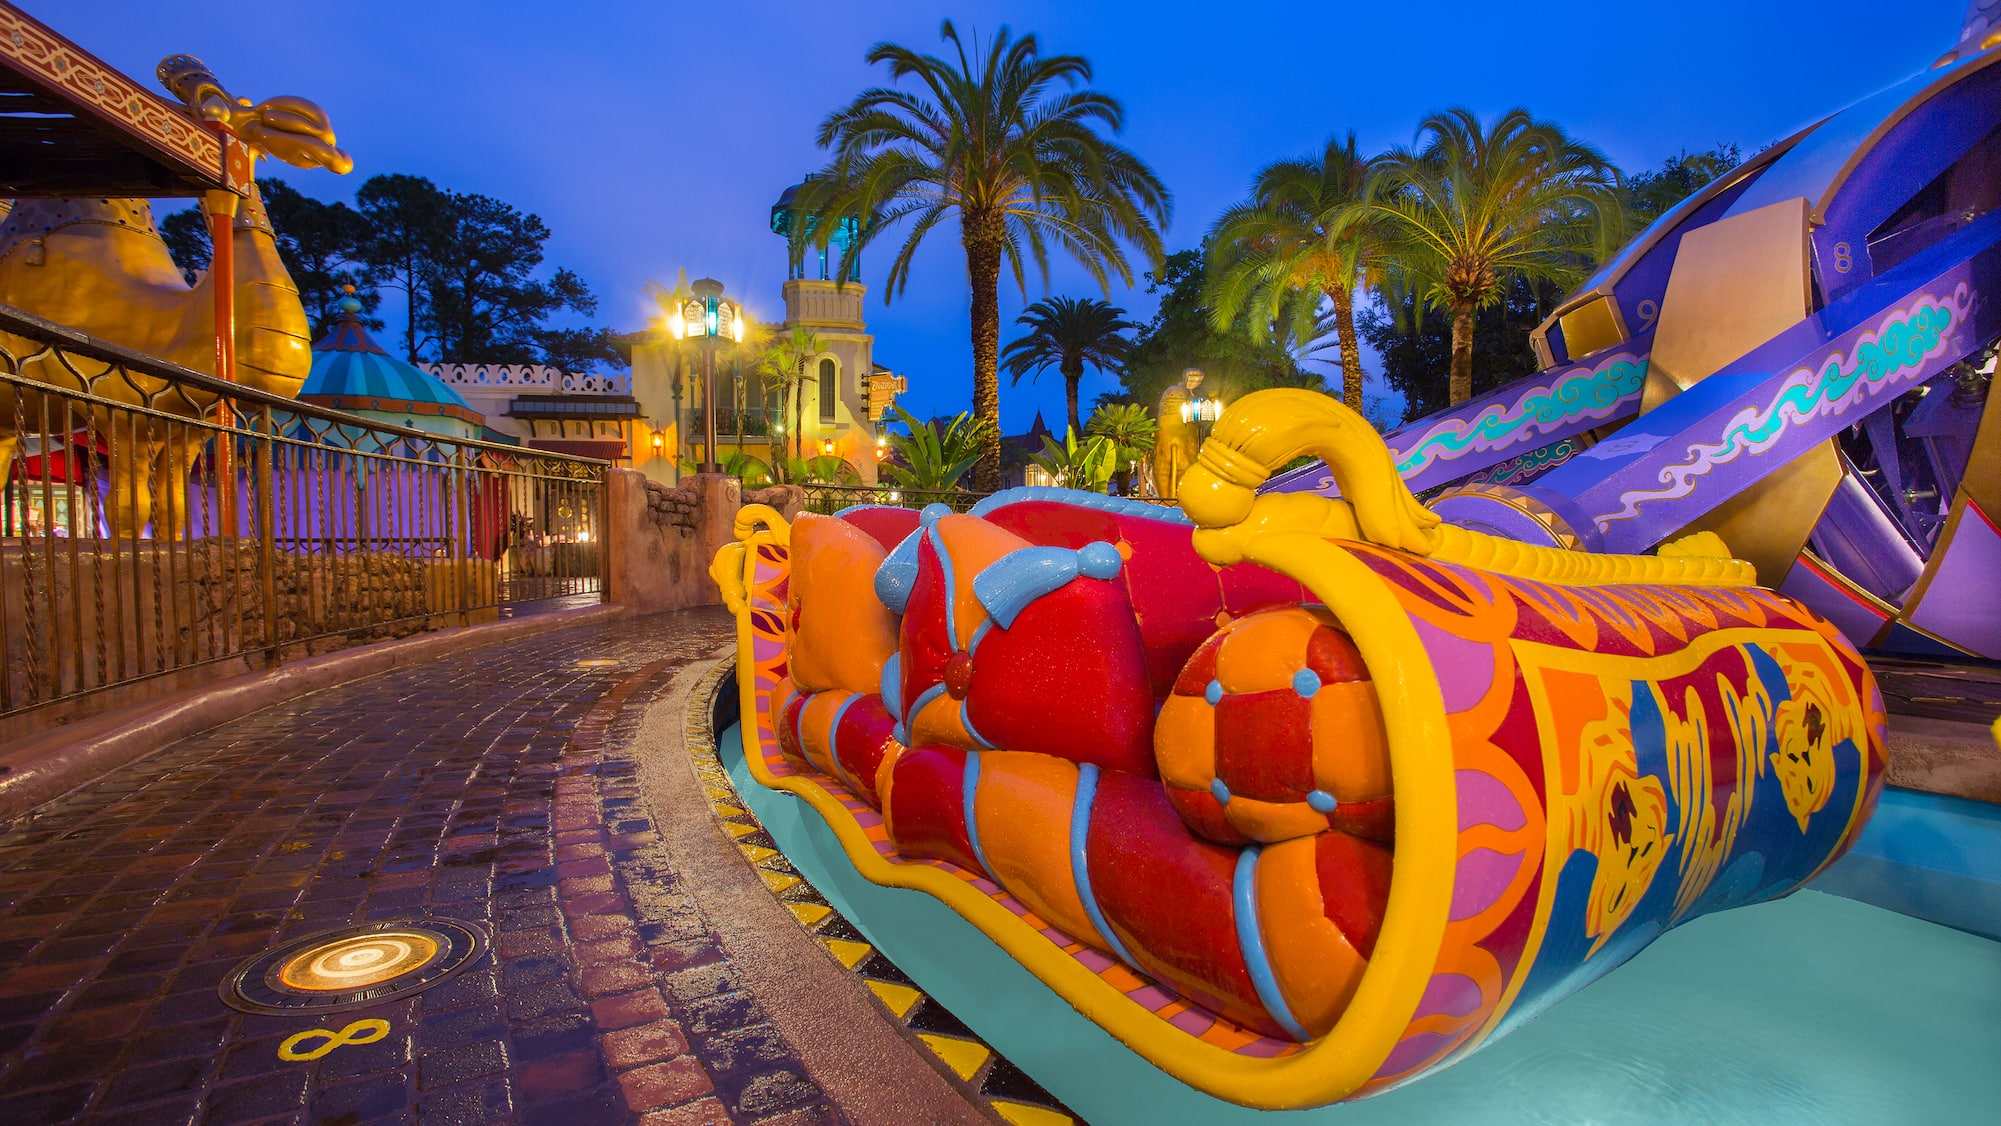 A Section Of The Magic Carpets Aladdin Attraction Next To Huge Camel Statue At